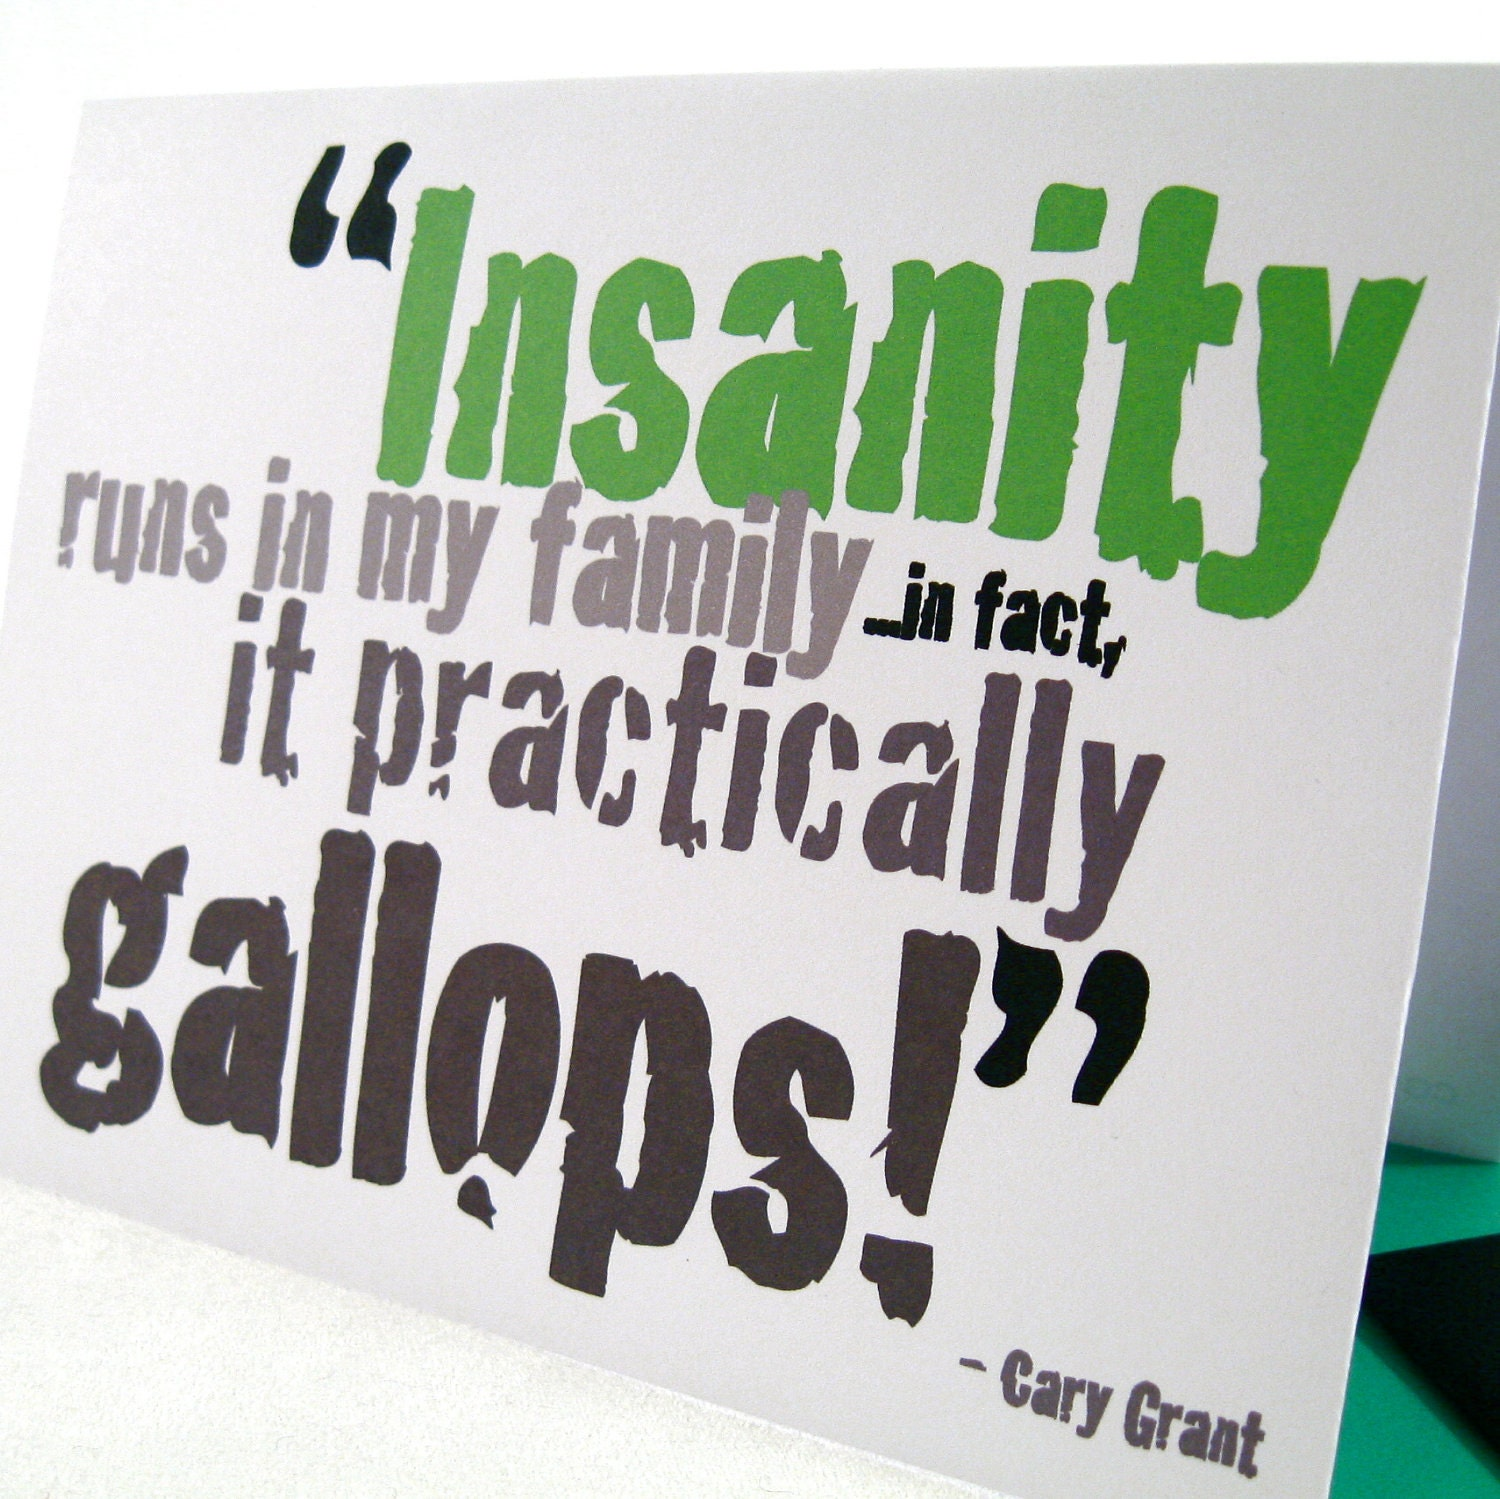 Crazy Funny Quotes And Sayings: Insane Family Quotes. QuotesGram